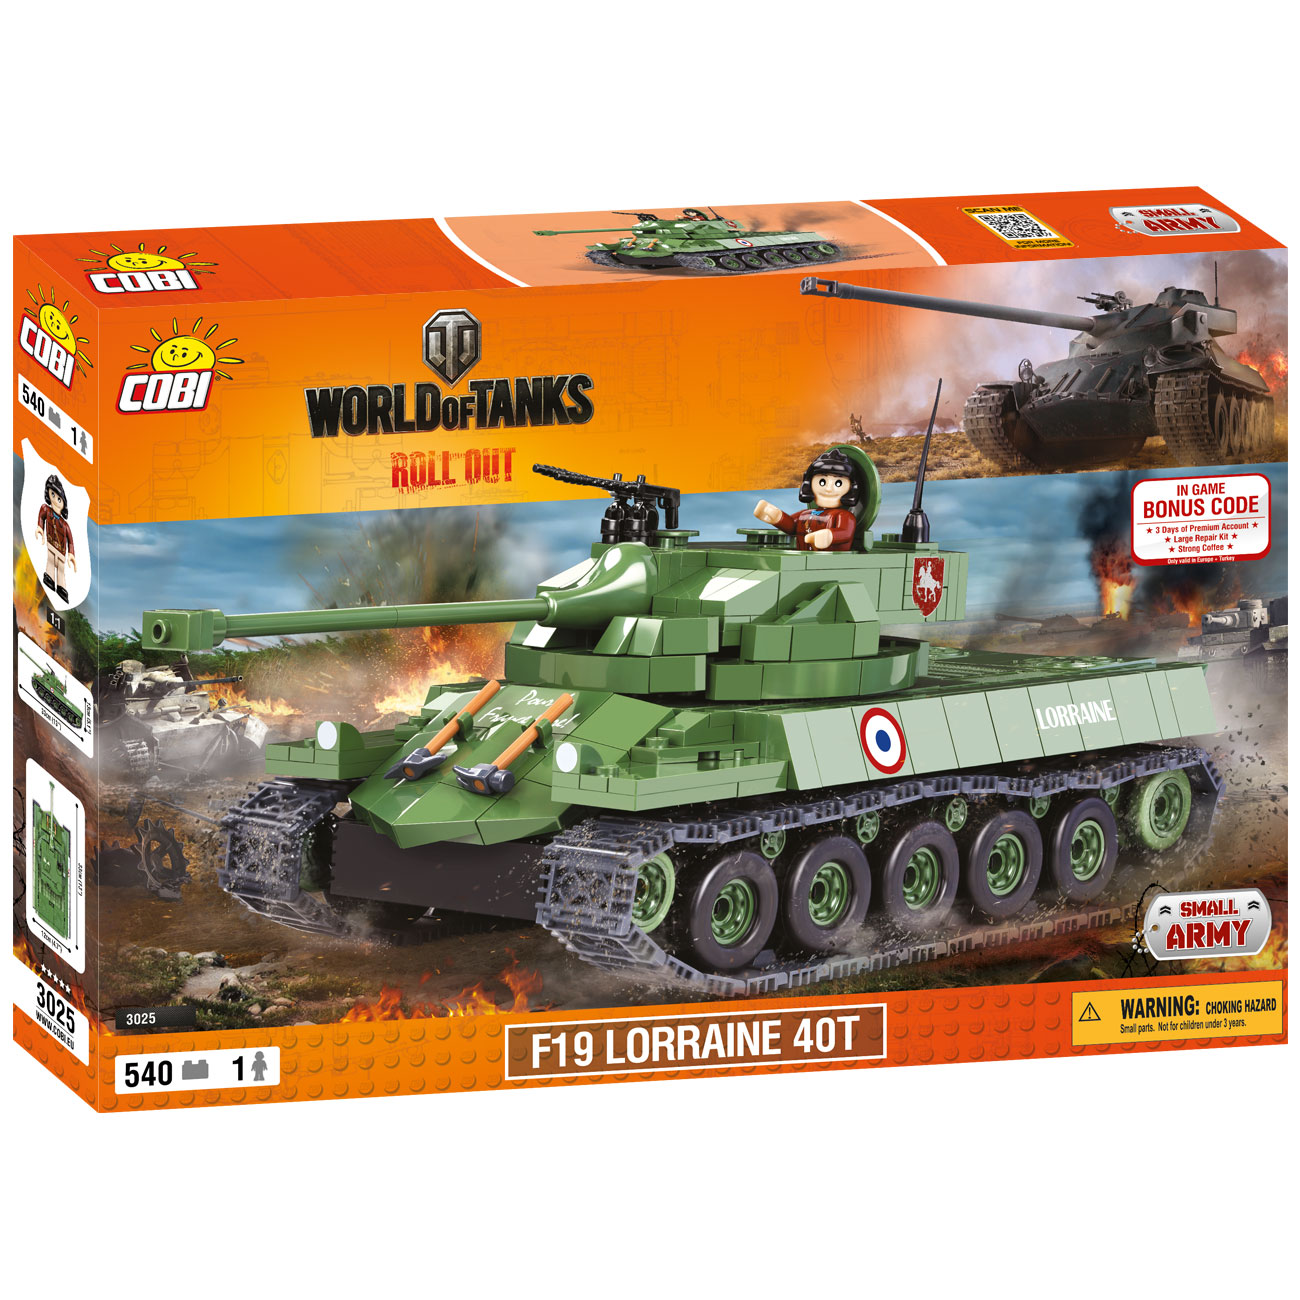 Cobi World Of Tanks Roll Out Small Army Bausatz Panzer F19 Lorraine 40T 540 Teile 3025 1